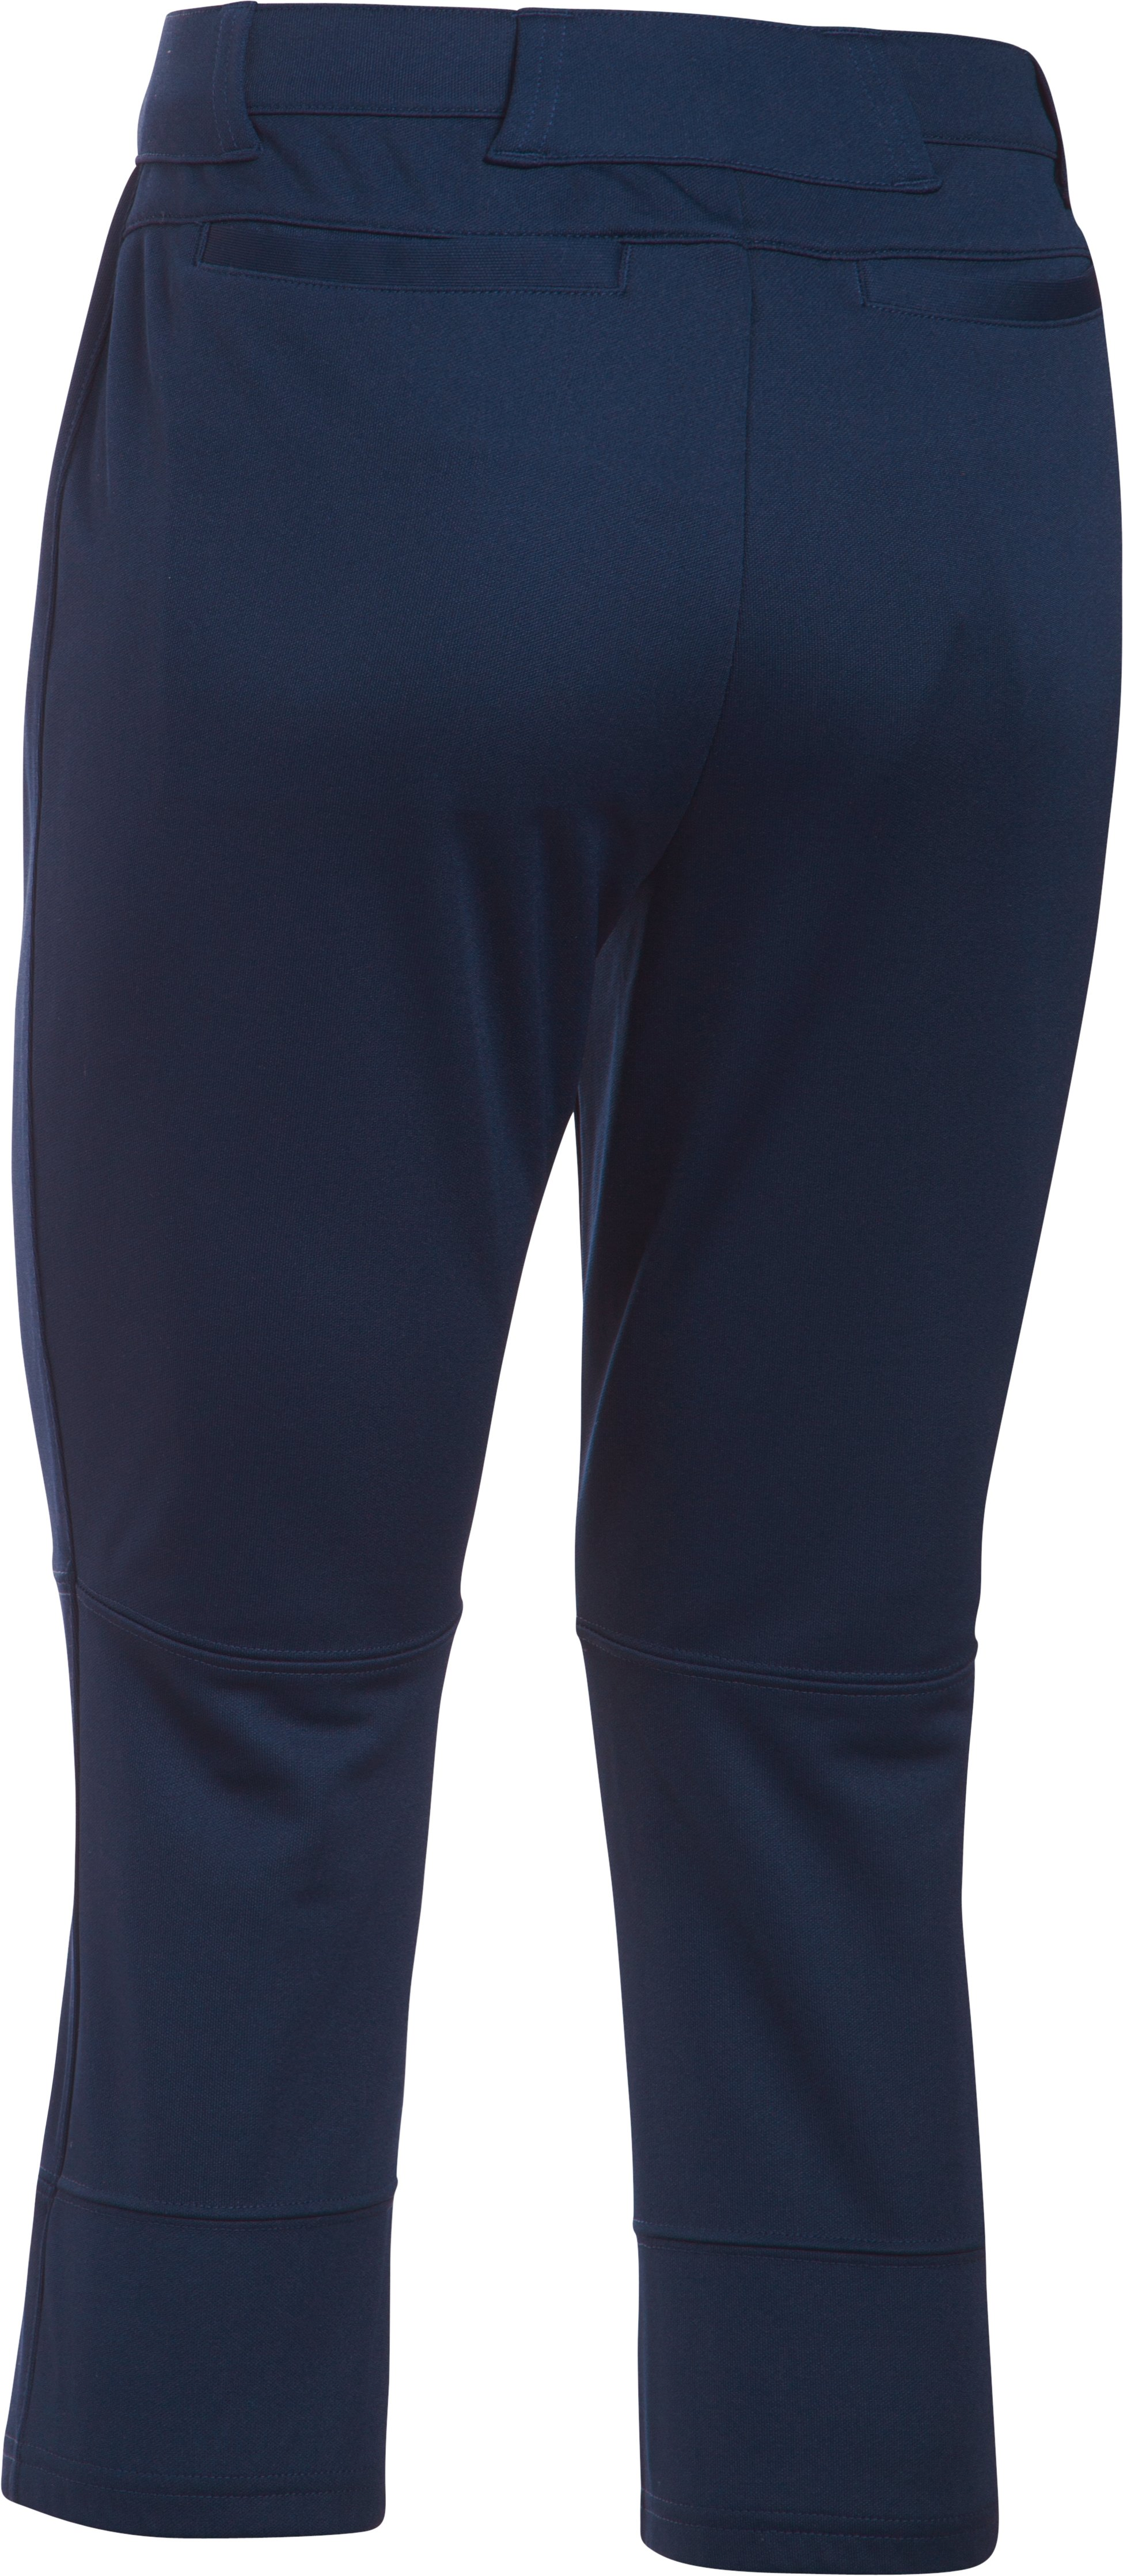 Women's UA Strike Zone Pants, Midnight Navy, undefined